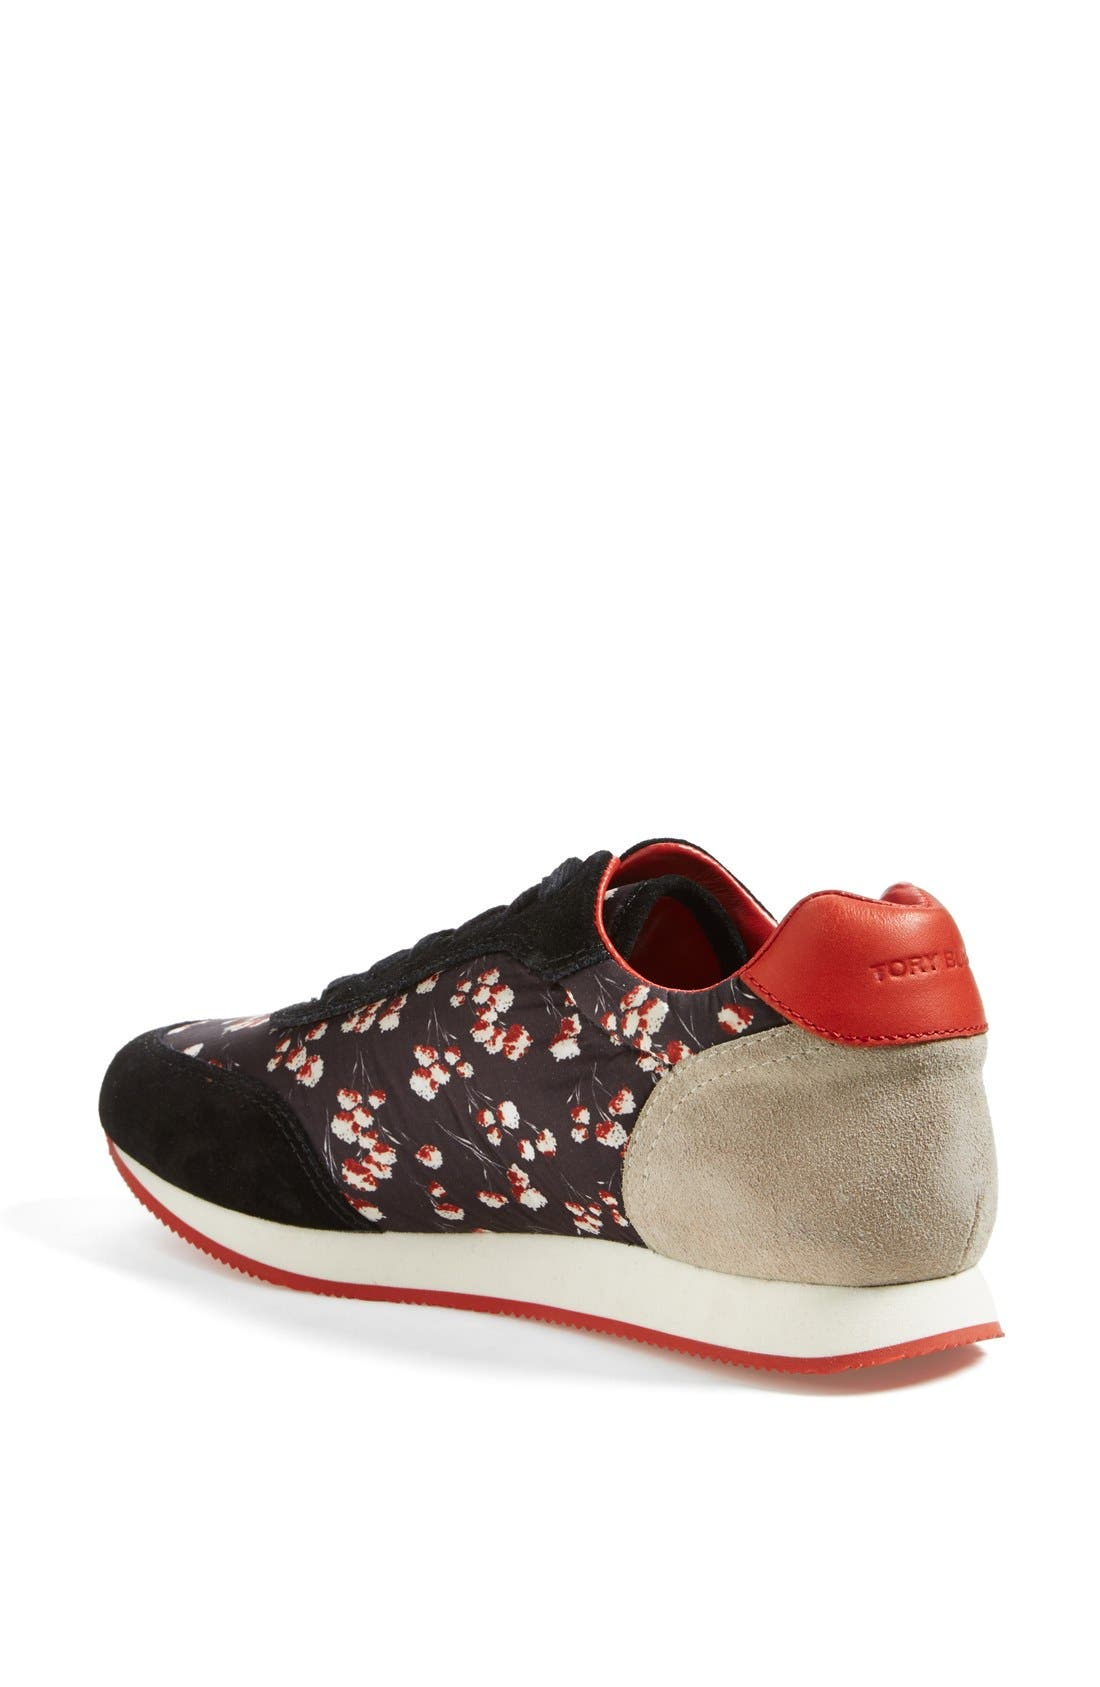 Alternate Image 2  - Tory Burch 'Delancey' Print Sneaker